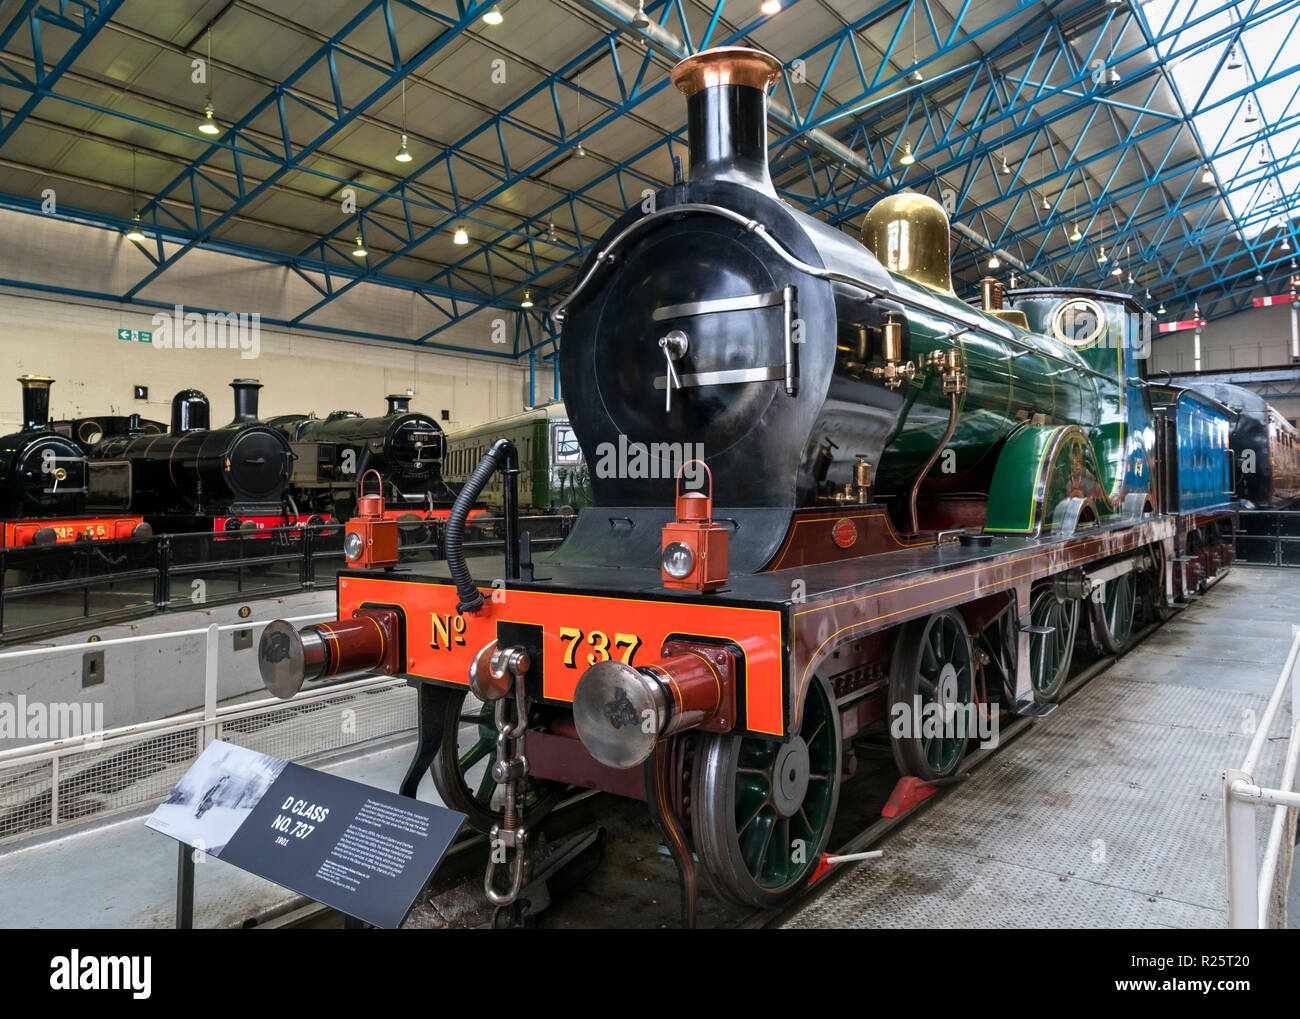 South Eastern and Chatham Railway D Class Steam Locomotive No 737 in the Great Hall, National Railway Museum, York, England. - Stock Image